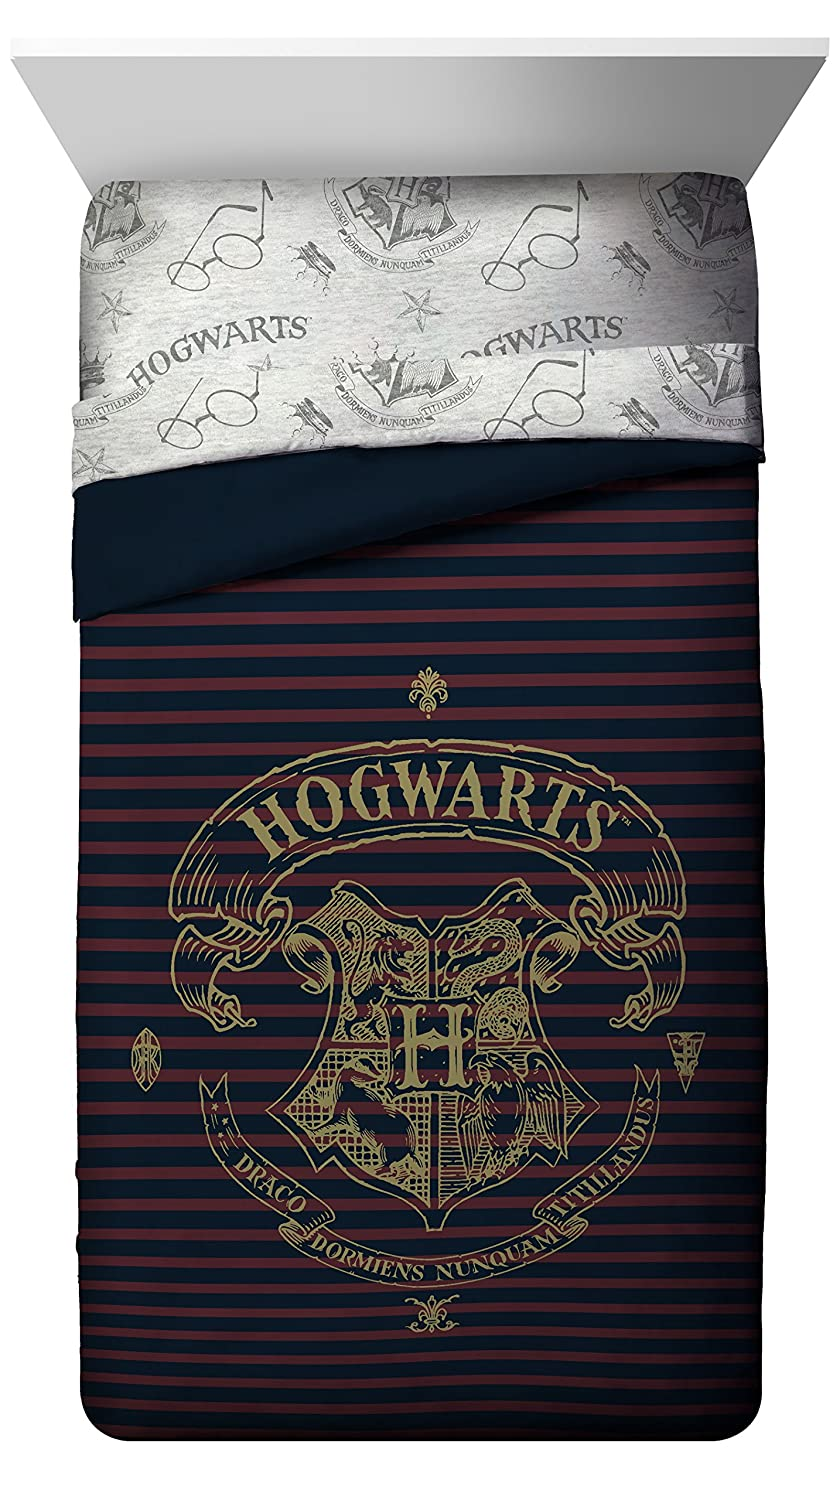 Jay Franco Harry Potter Spellbound Twin/Full Comforter - Super Soft Kids Reversible Bedding Features Hogwarts - Fade Resistant with Gold Foil (Official Warner Brothers Product)